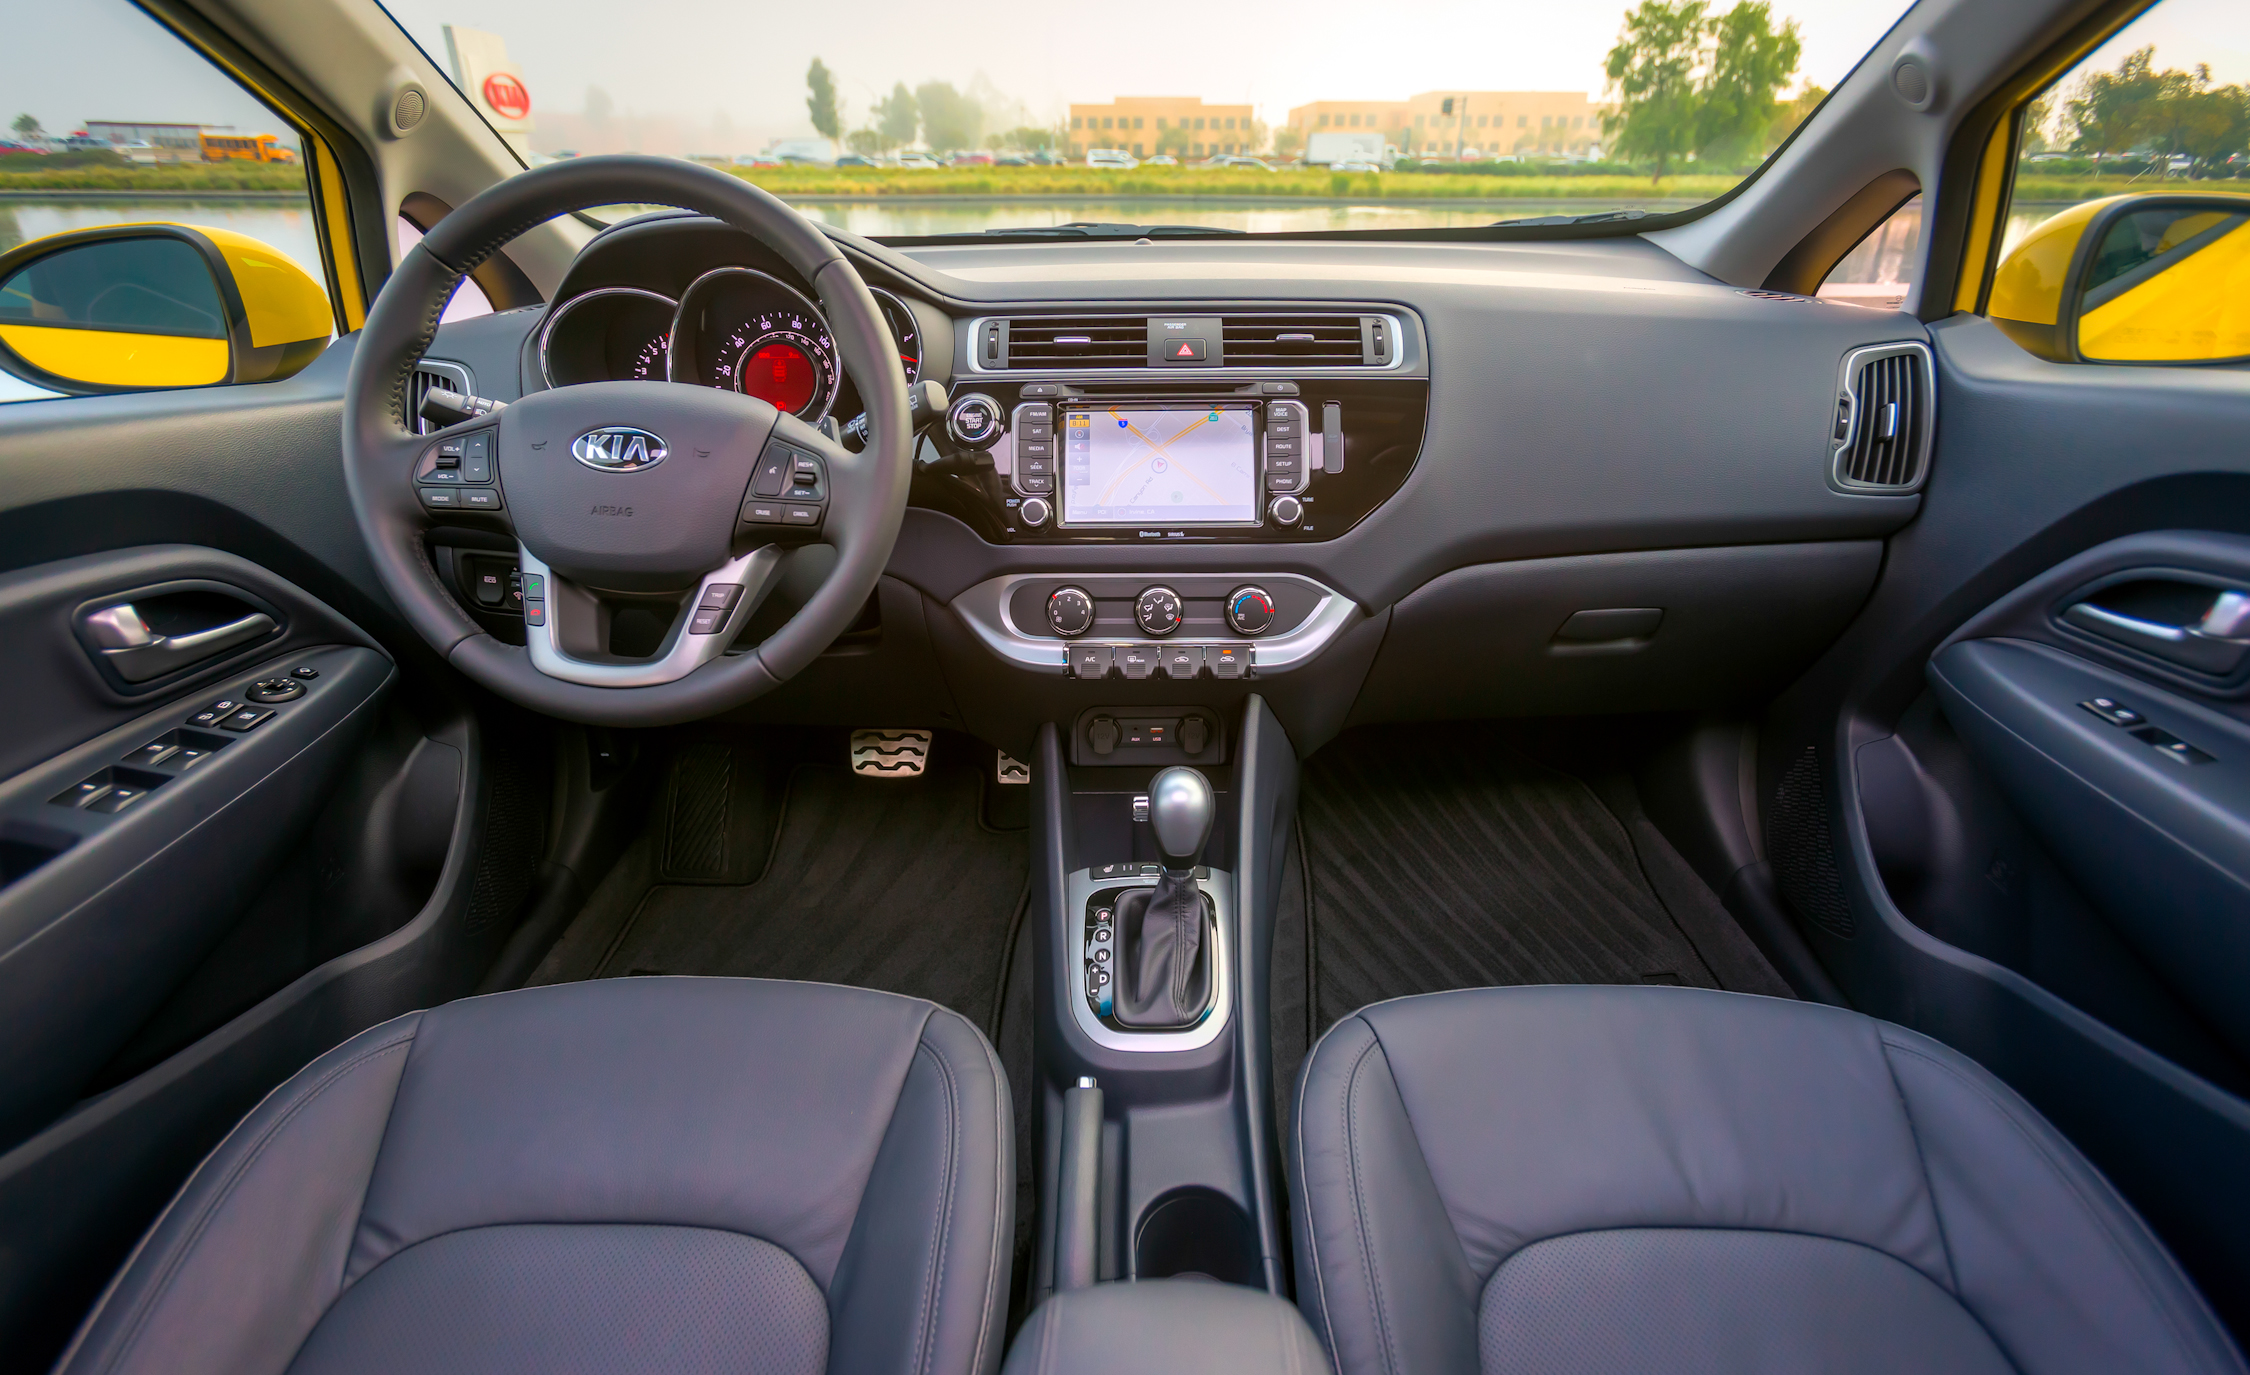 2016 Kia Rio 5 Door (View 1 of 19)